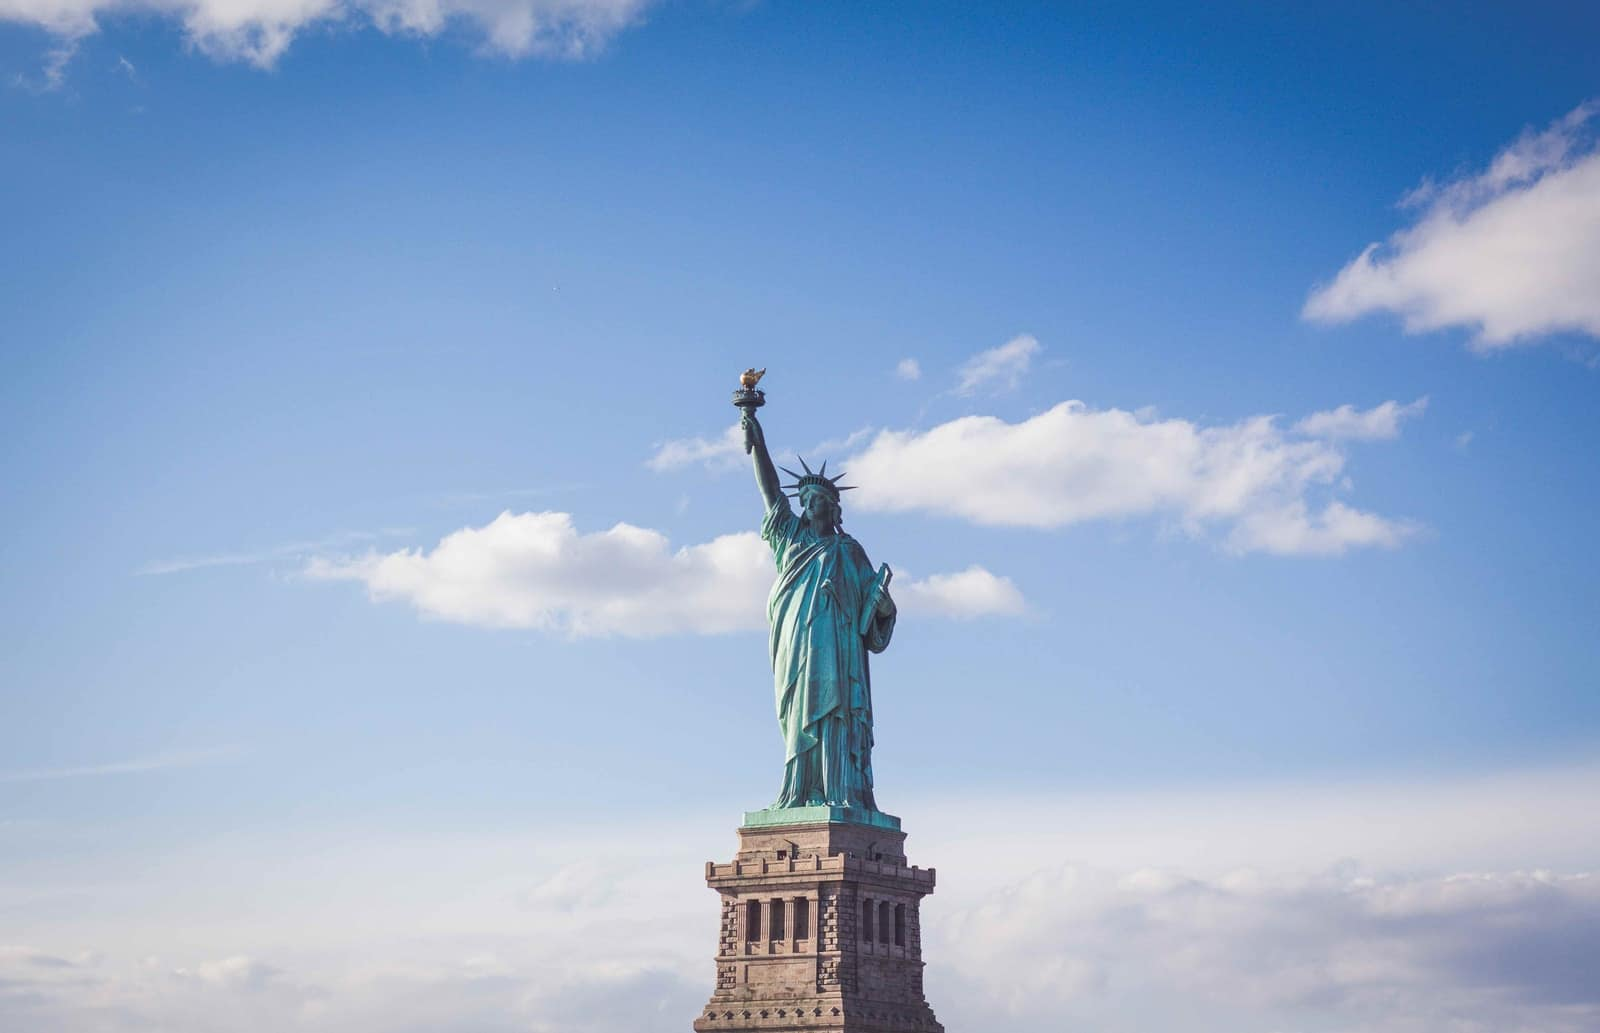 Statue of Liberty, New York under white and blue cloudy skies